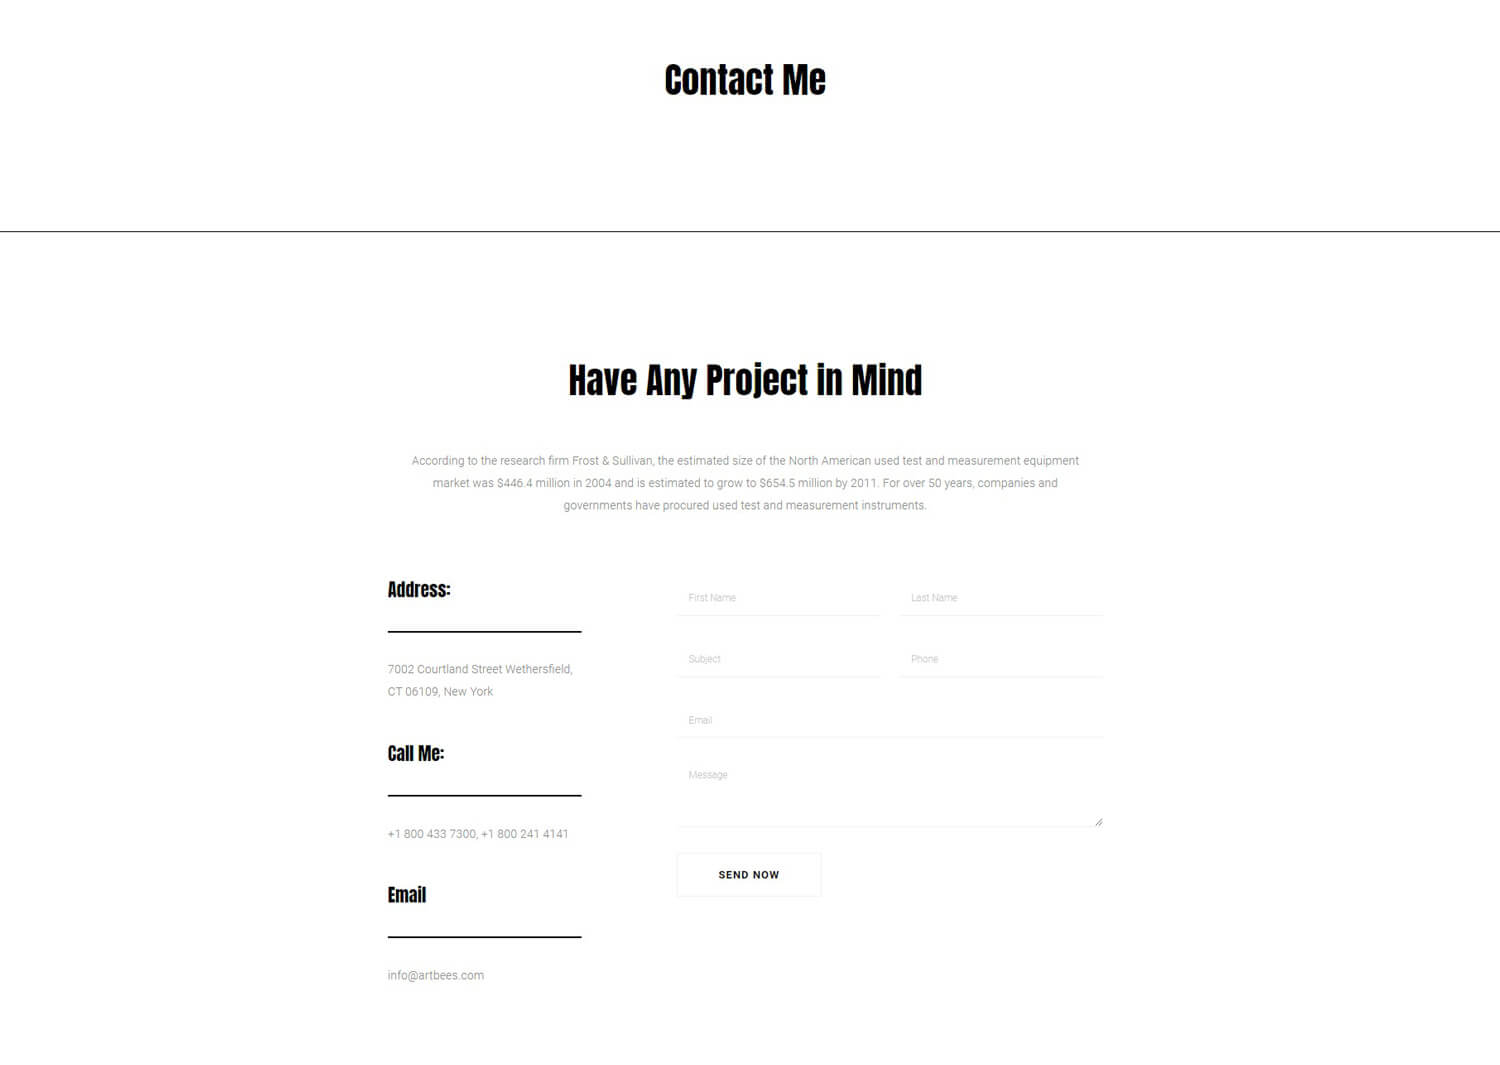 Contact-Form-WhiteBg